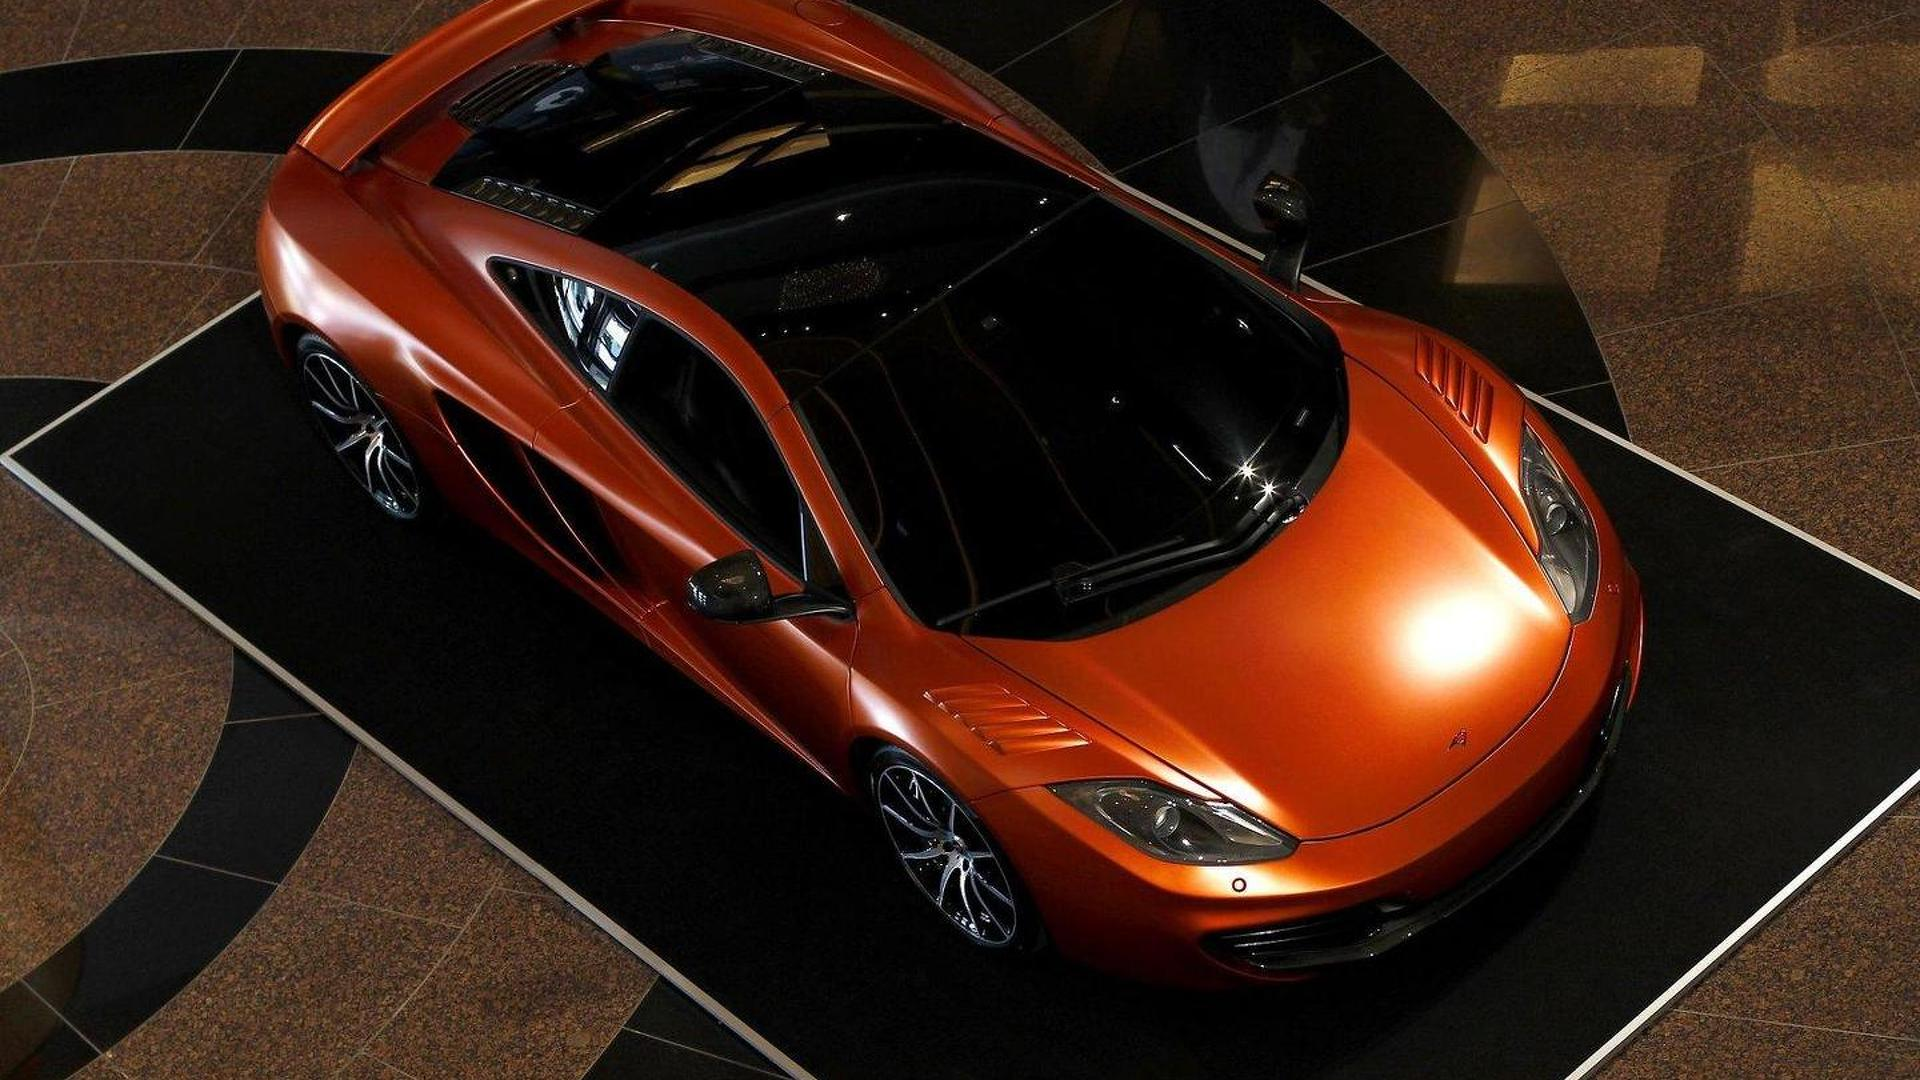 McLaren releases new promo for Asia Pacific subsidiary announcement [video]